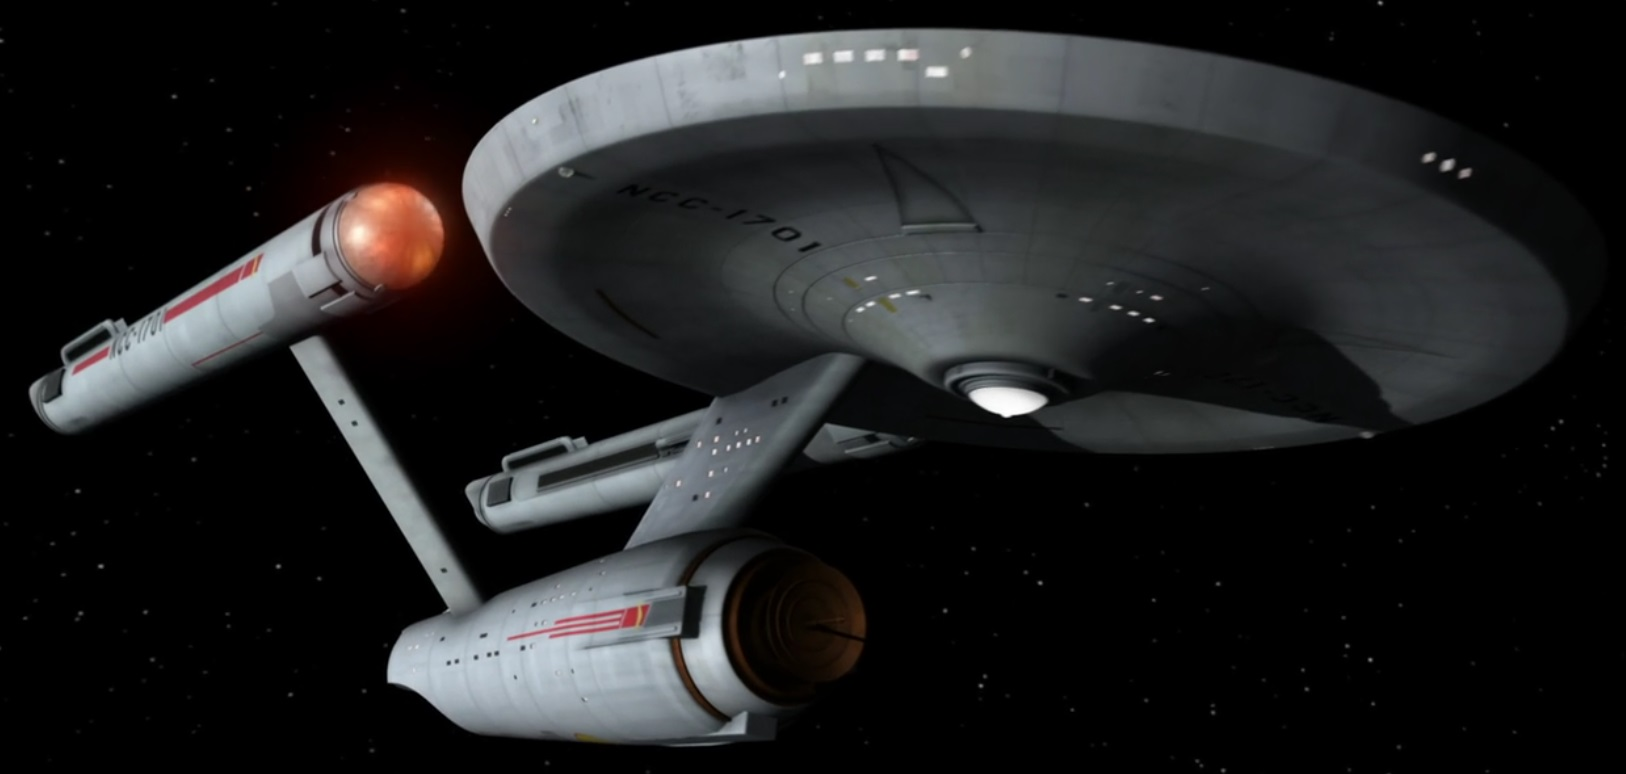 The USS Enterprise was launched in this year